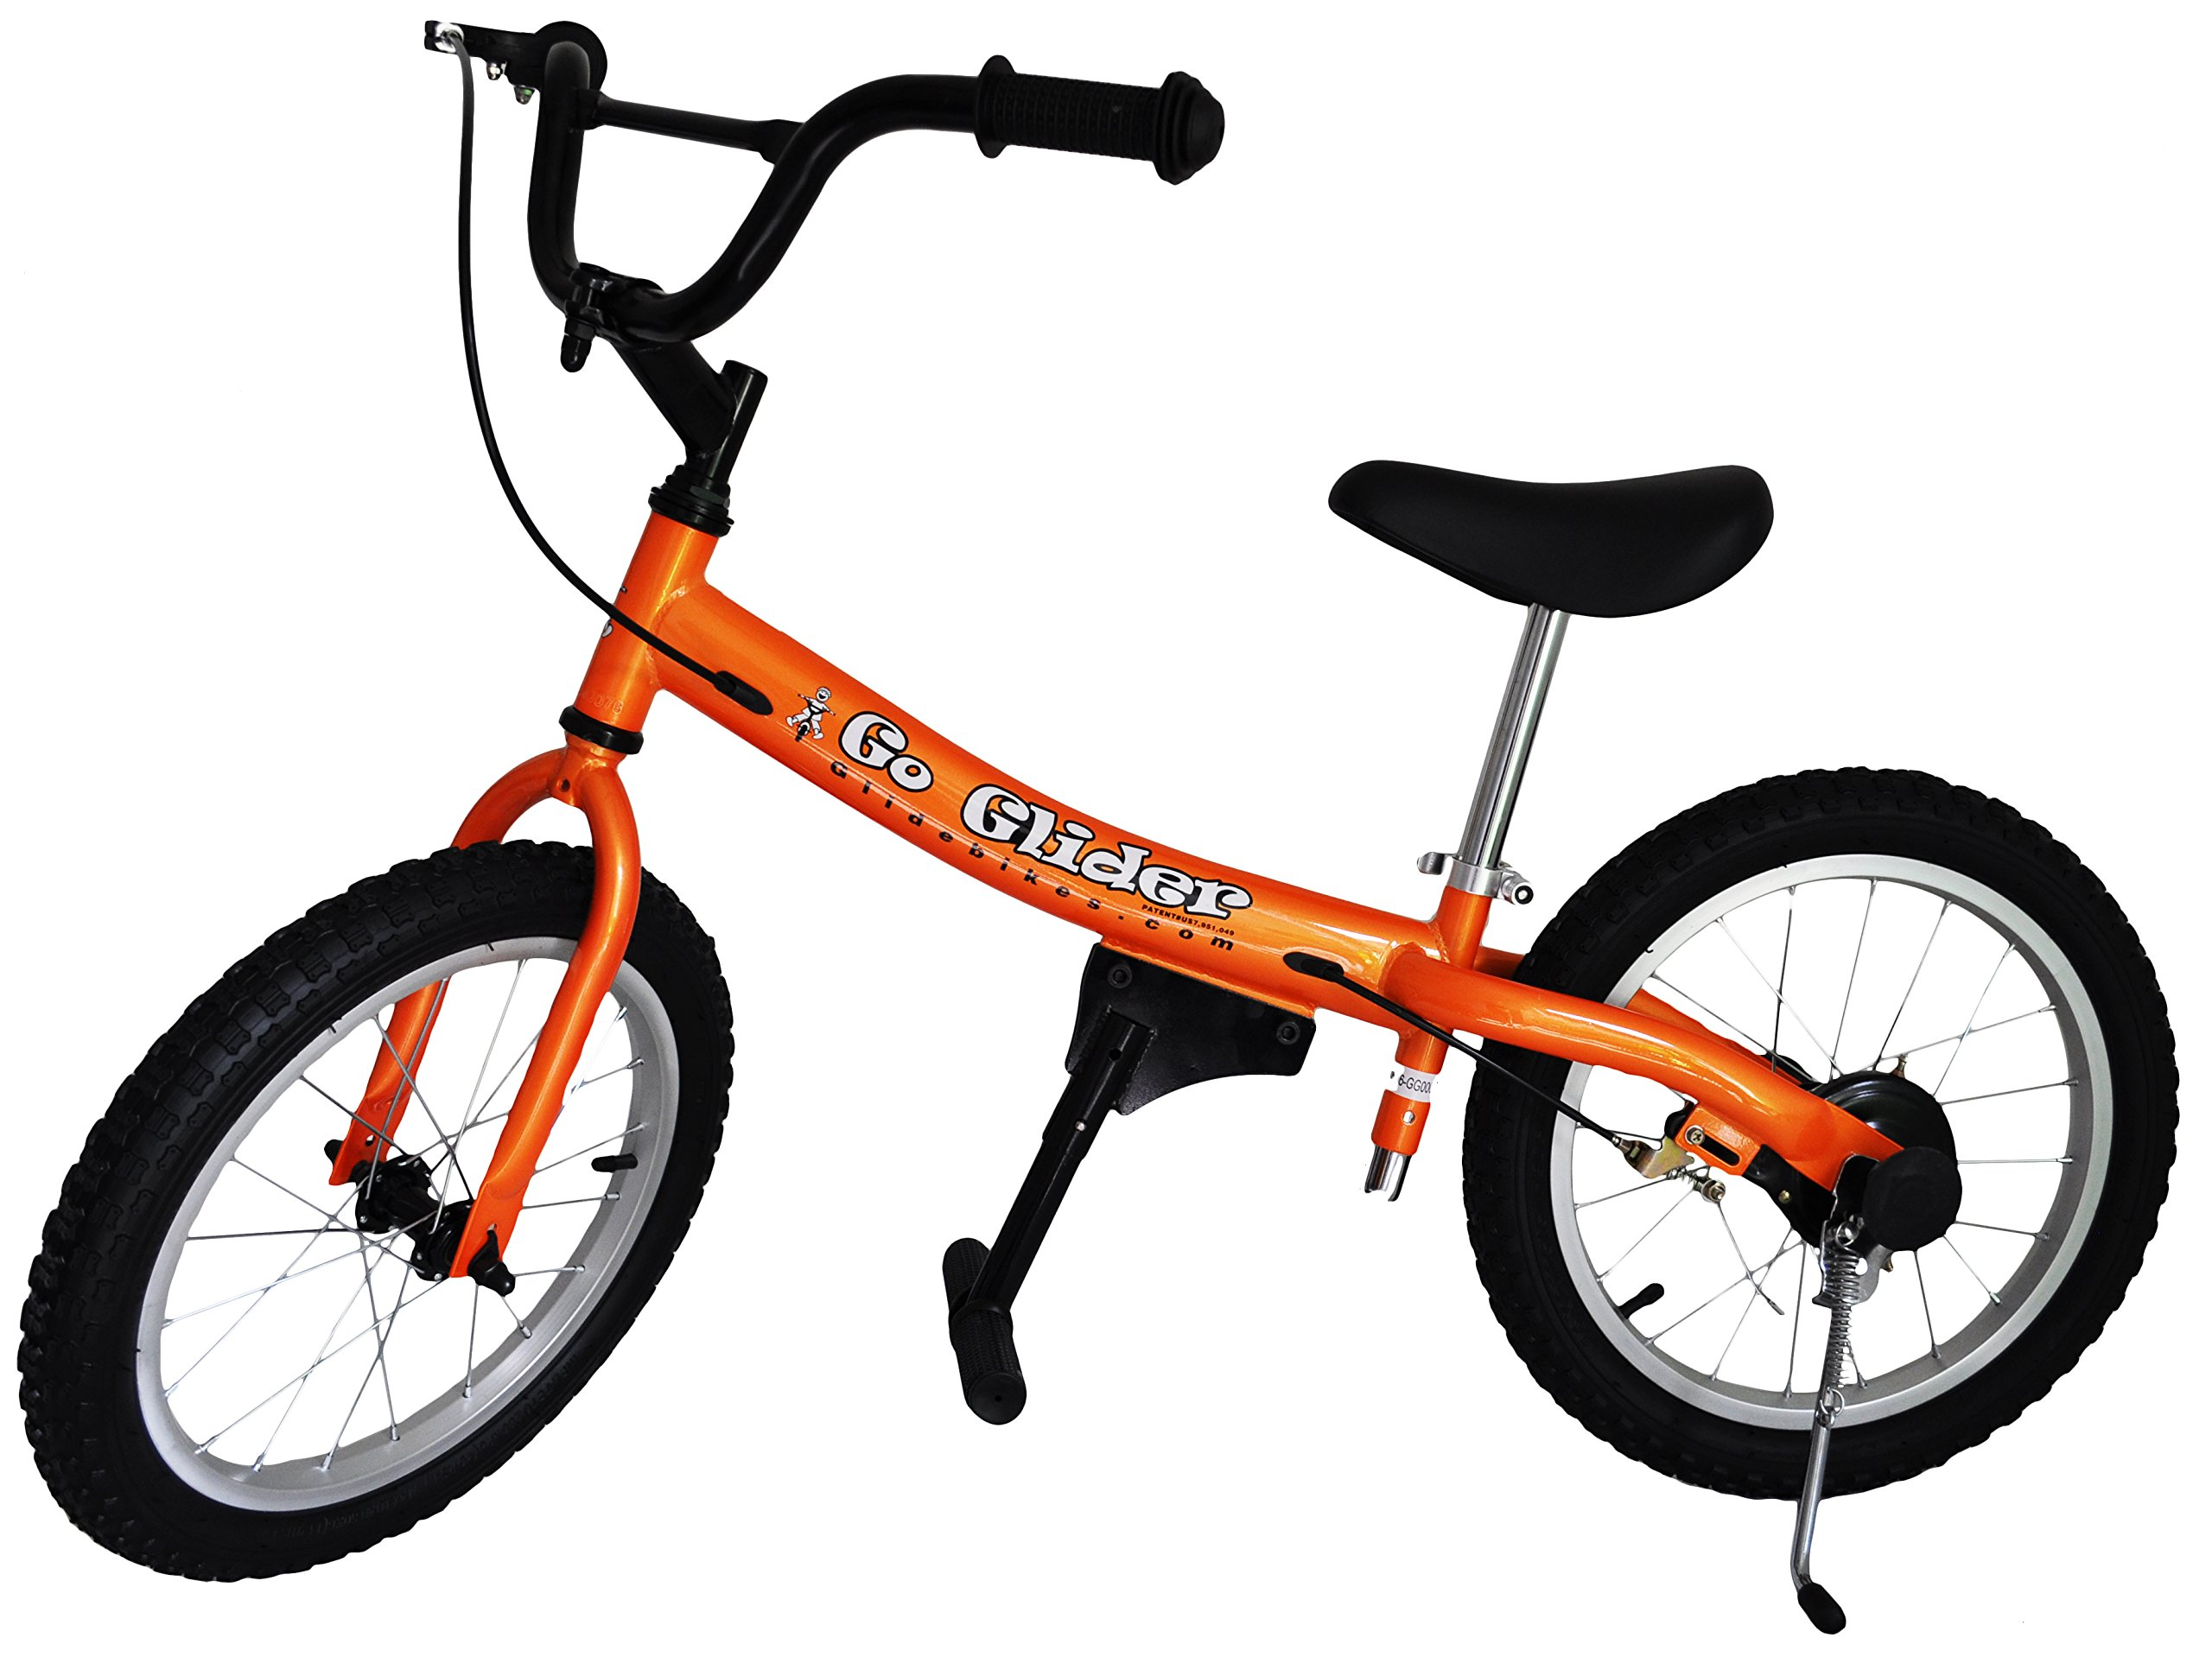 Glide Bikes Kid's Go Glider Balance Bike, Orange, 16-Inch by Glide Bikes